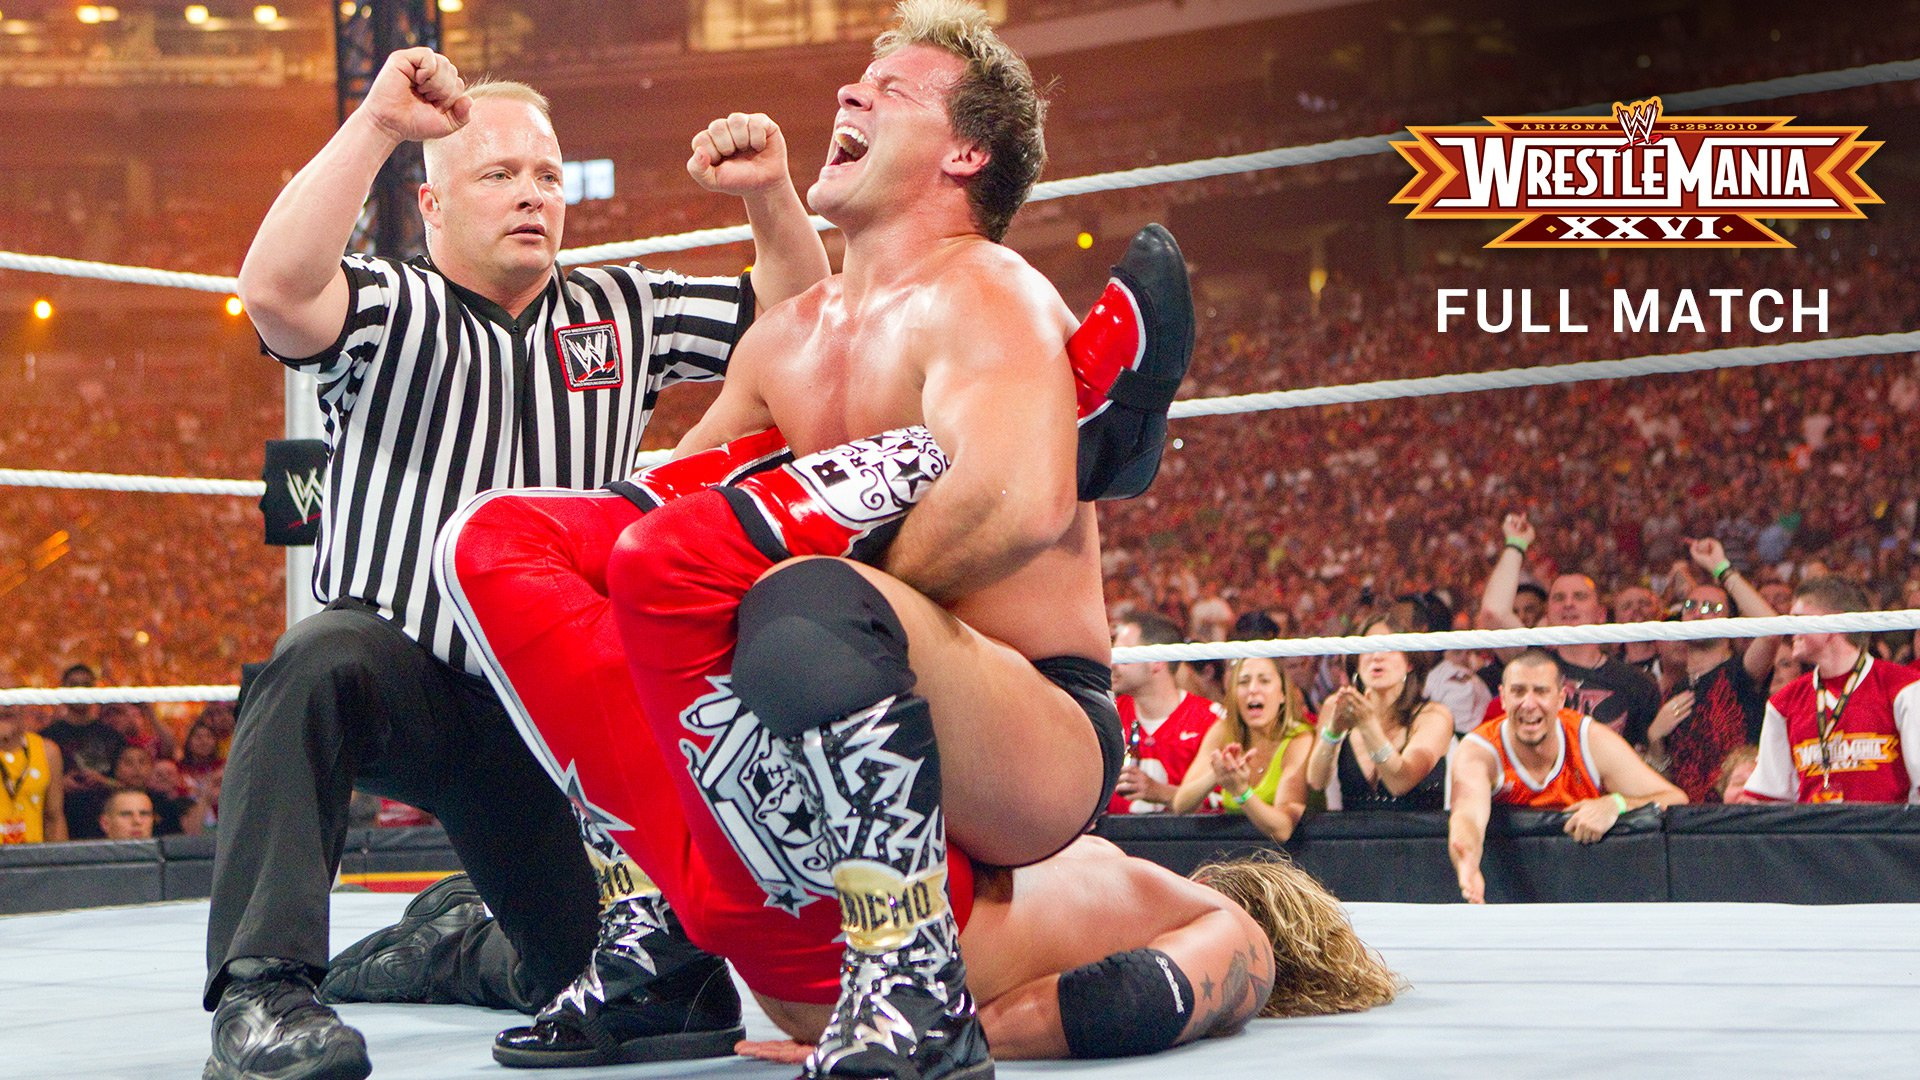 What are some biographical facts about WWE wrestler Edge?